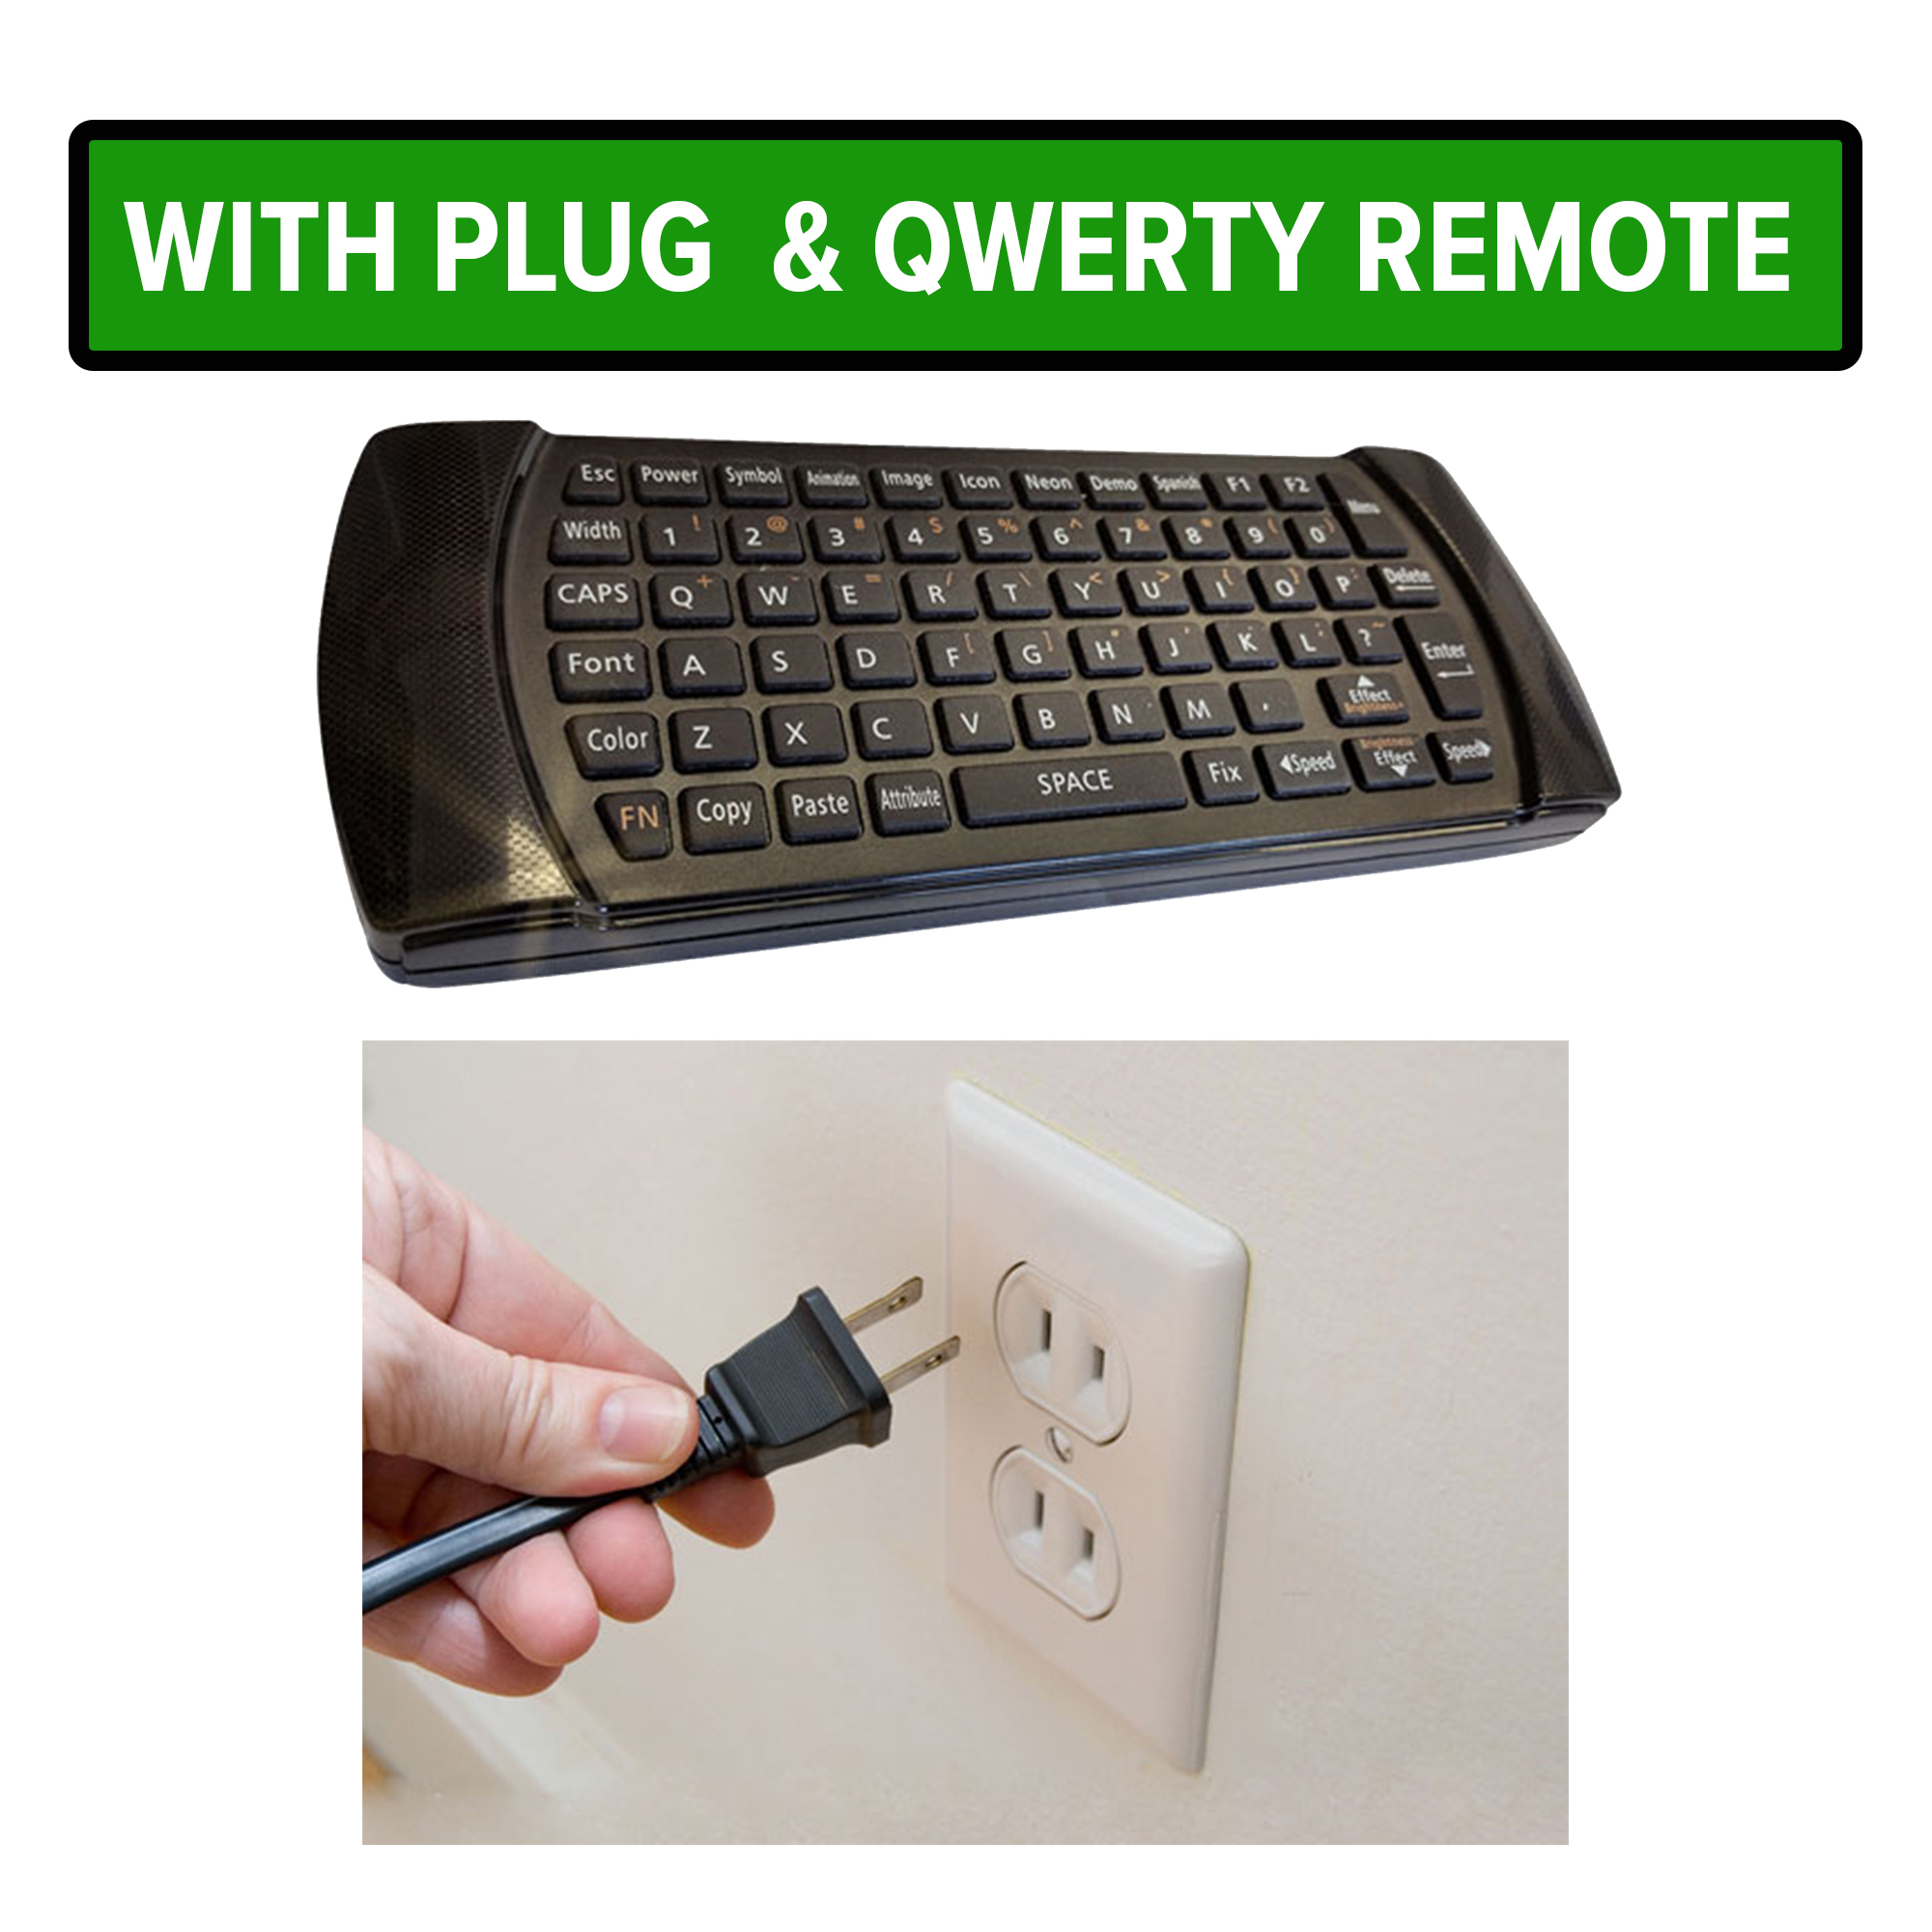 Qwerty-remote-and-plug